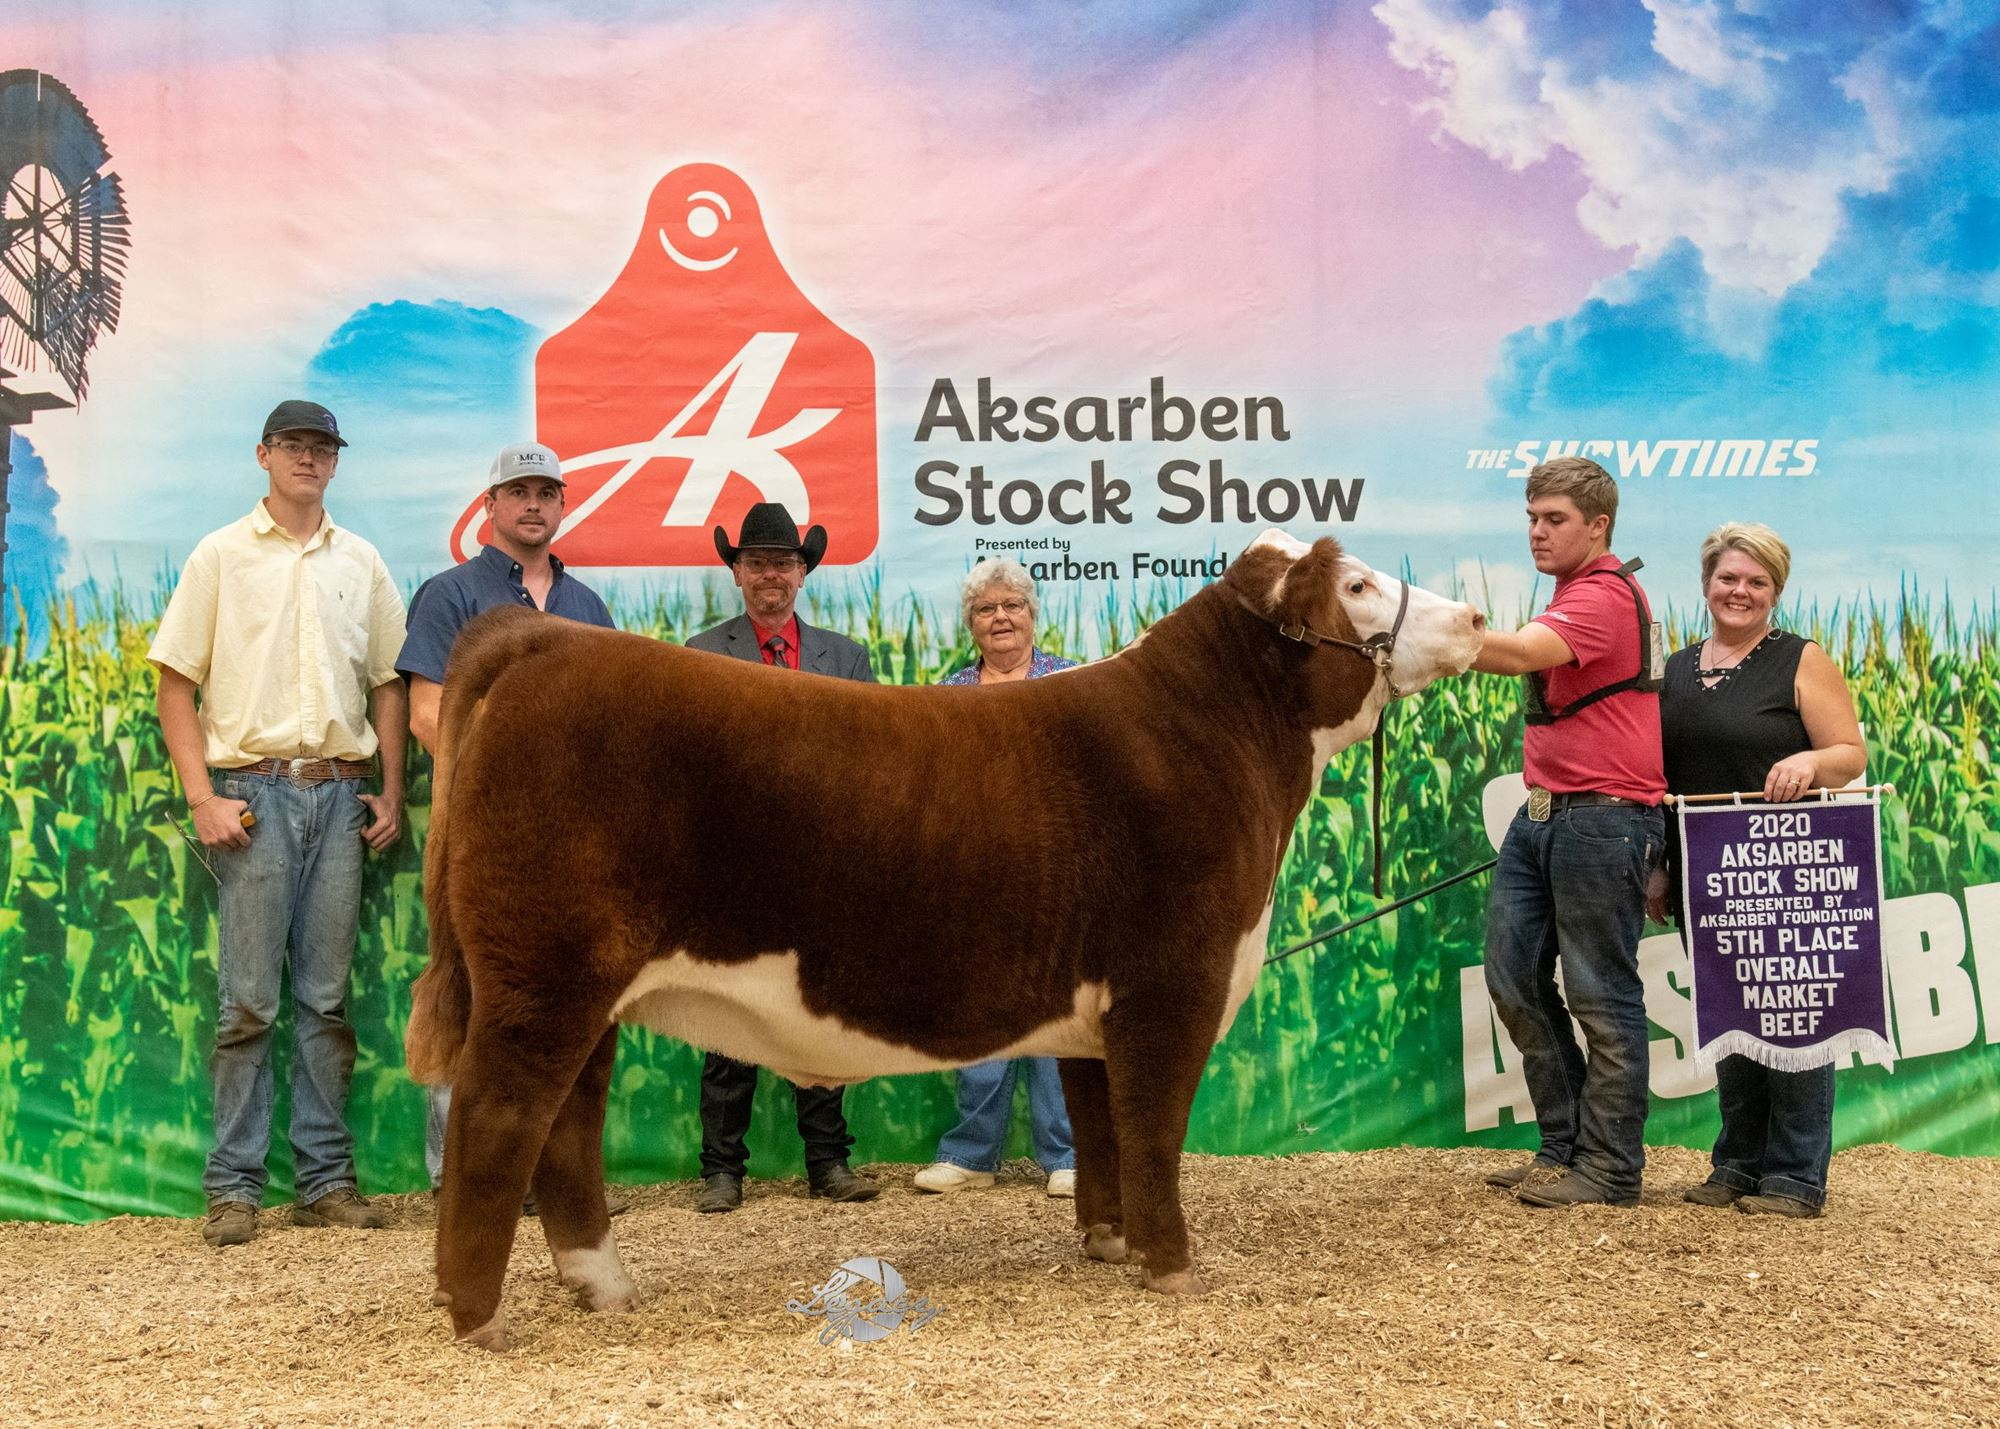 5th Overall Market Beef